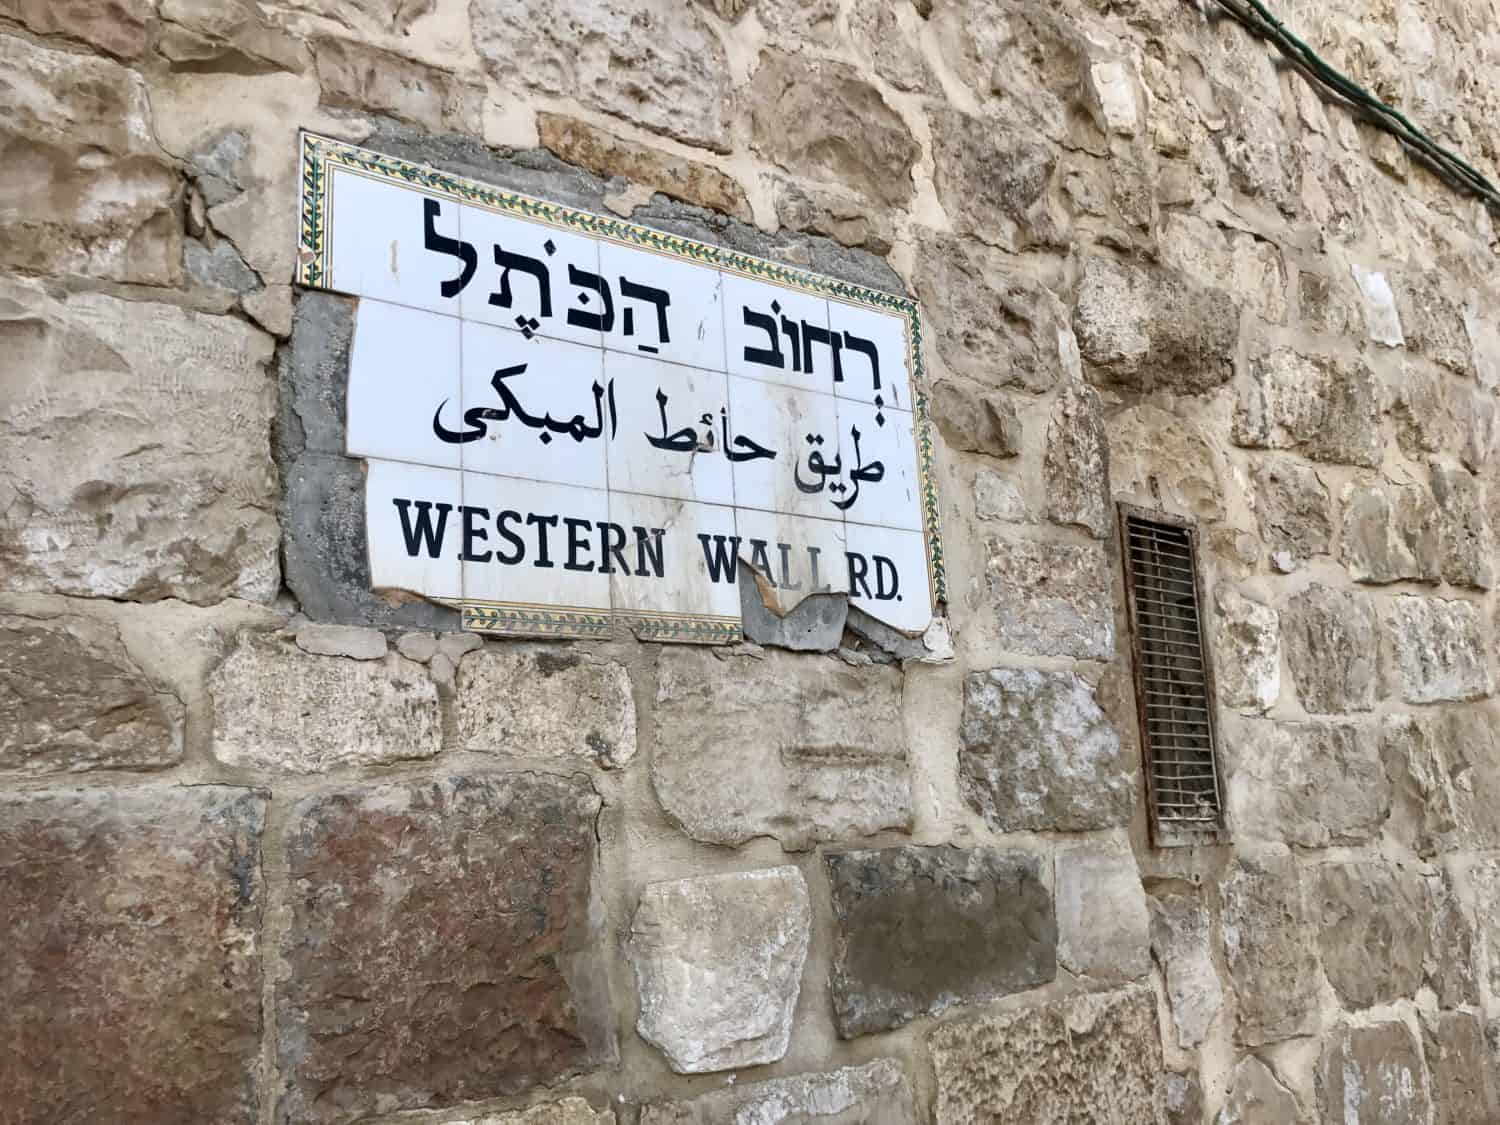 How to visit the Temple Mount, Dome of the Rock, & Western Wall in Jerusalem | Tips for what to wear, when to go, what to bring, & how not to get in trouble. Jerusalem trip planning & itinerary ideas, what to do in Israel, and tips for visiting Jerusalem's Old City #templemount #jerusalem #israel